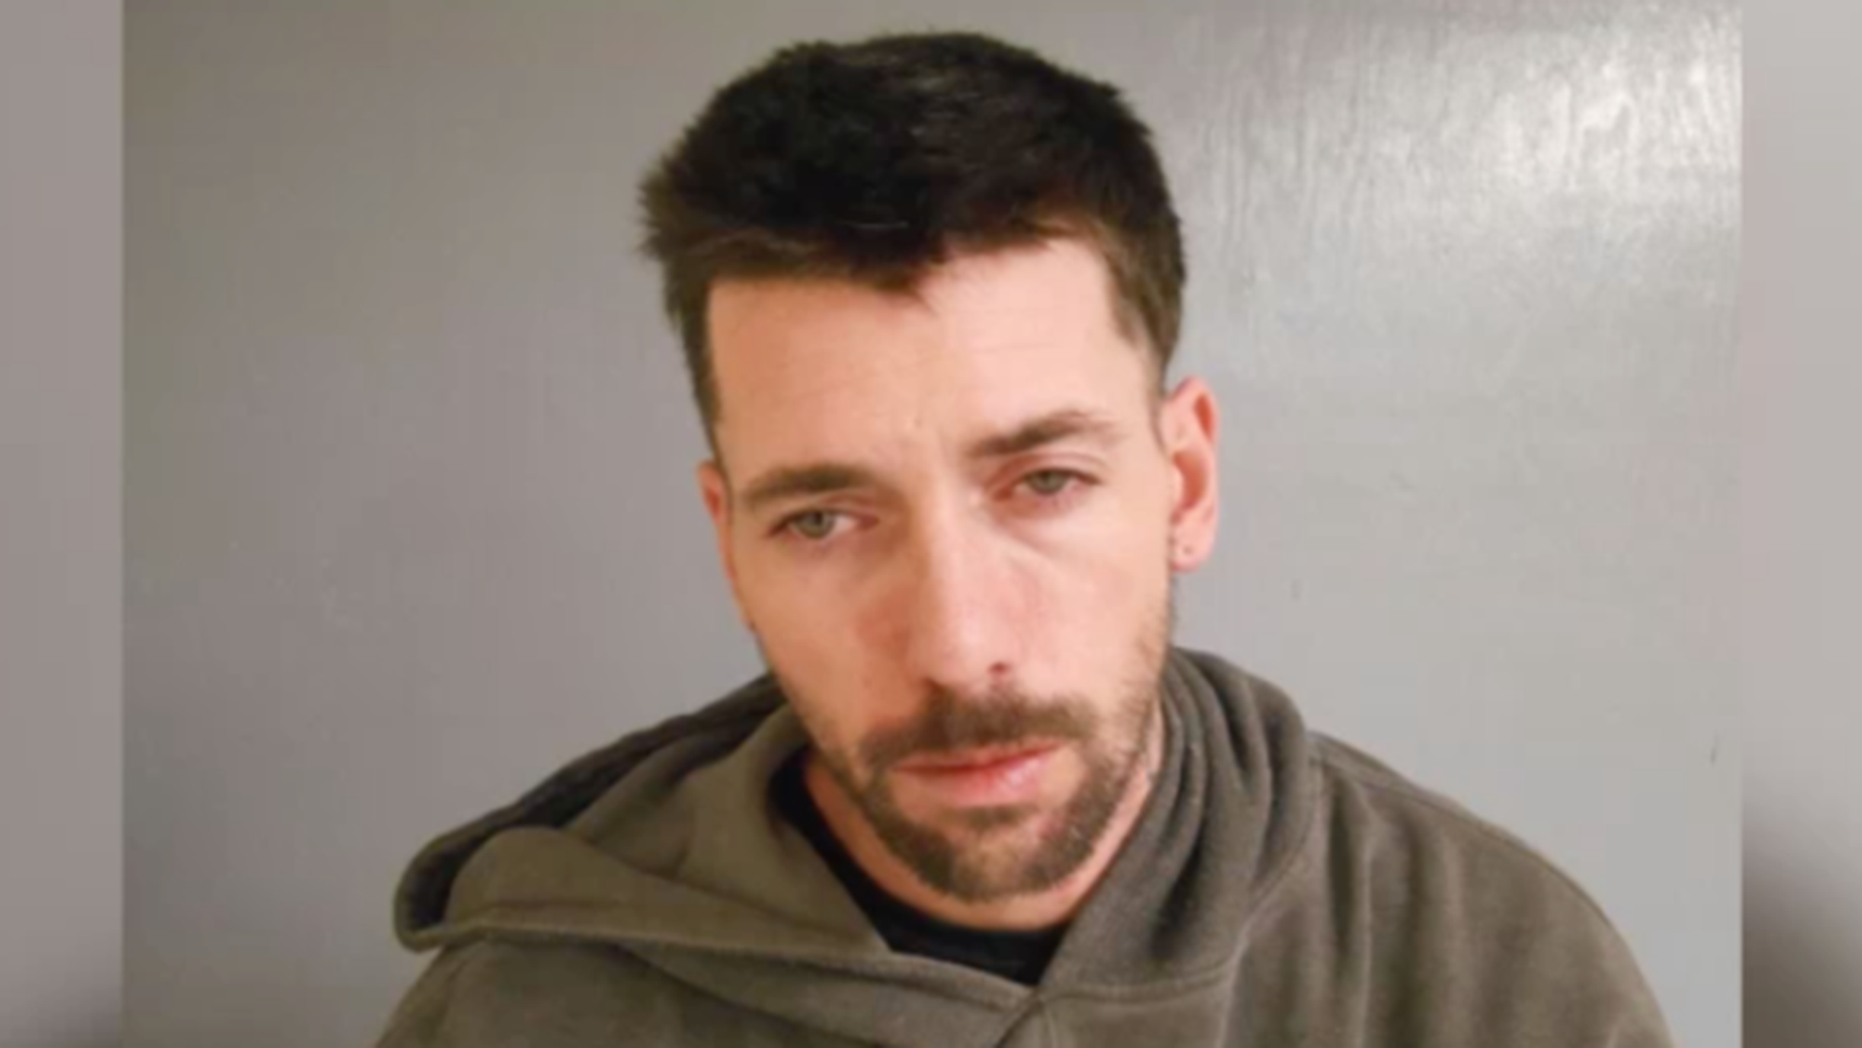 Jason Mackenrodt, 38, is accused of robbing a bank in Maine. He was caught after he slipped on ice in front of a cop while trying to flee.